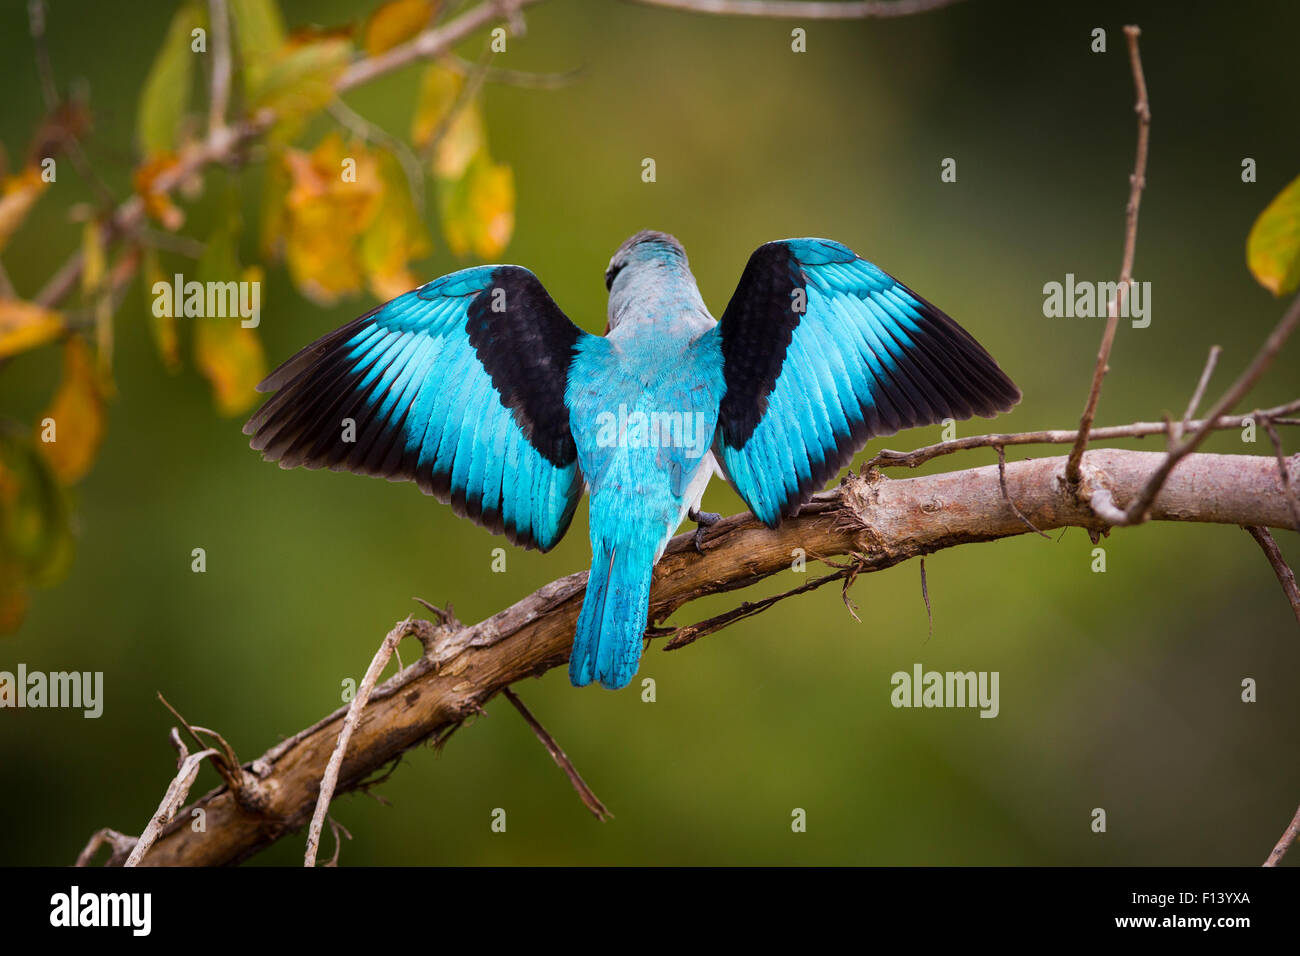 Woodland Kingfisher (Halcyon senegalensis) from behind with wings spread, South Luangwa National Park, Zambia. April. - Stock Image